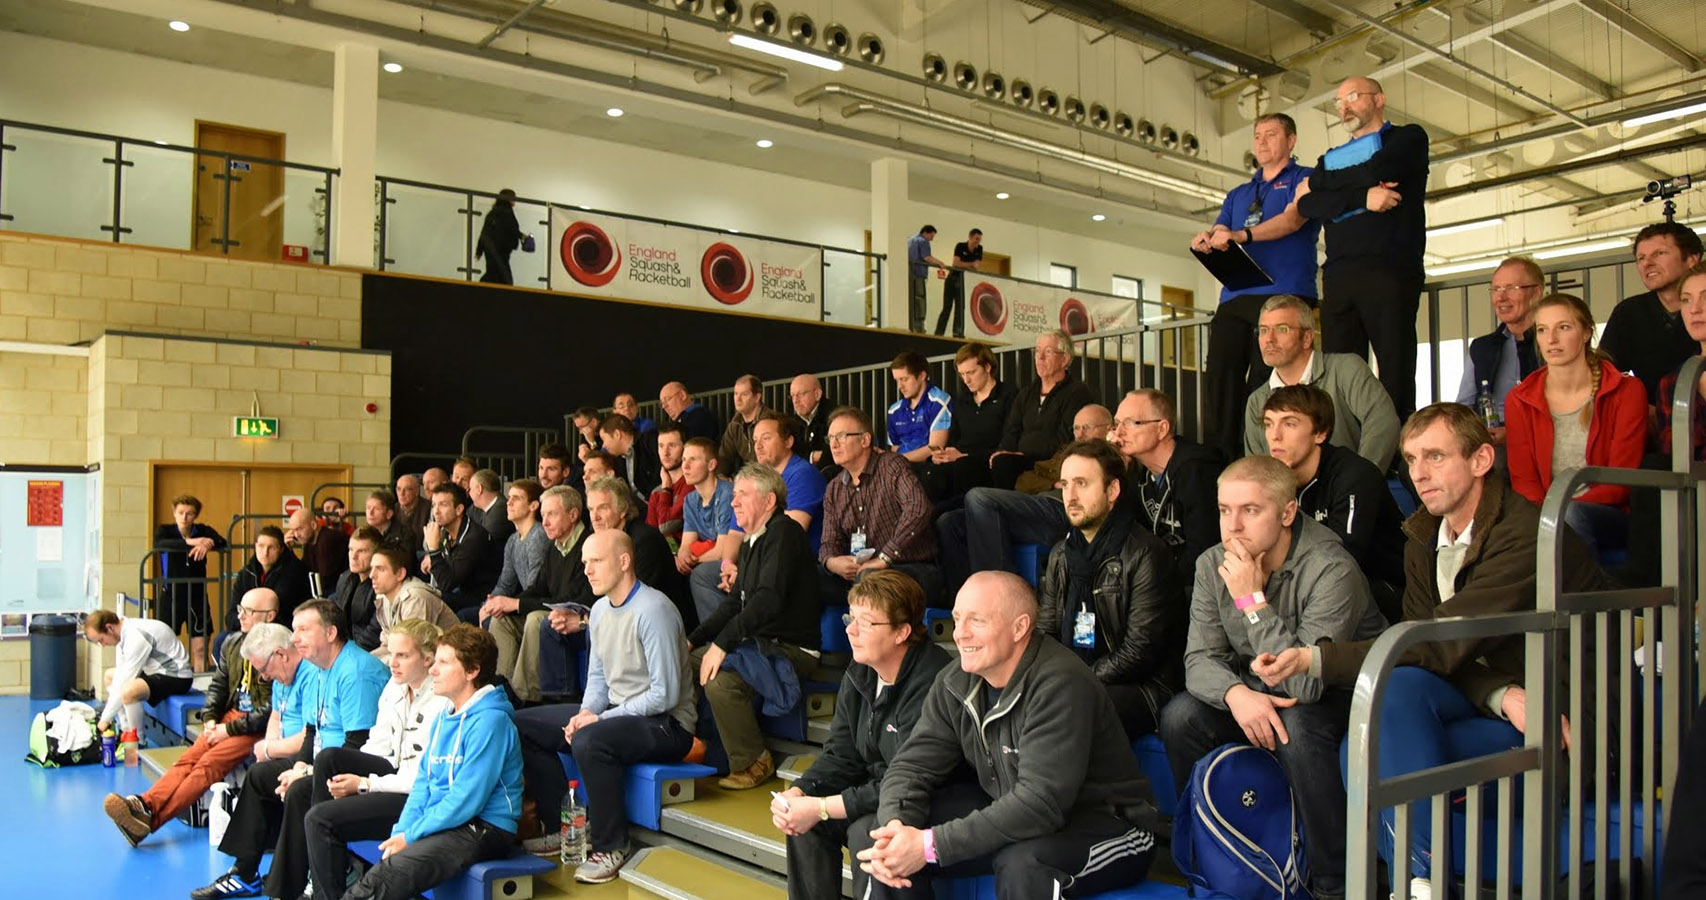 Referees at the National Squash Championships